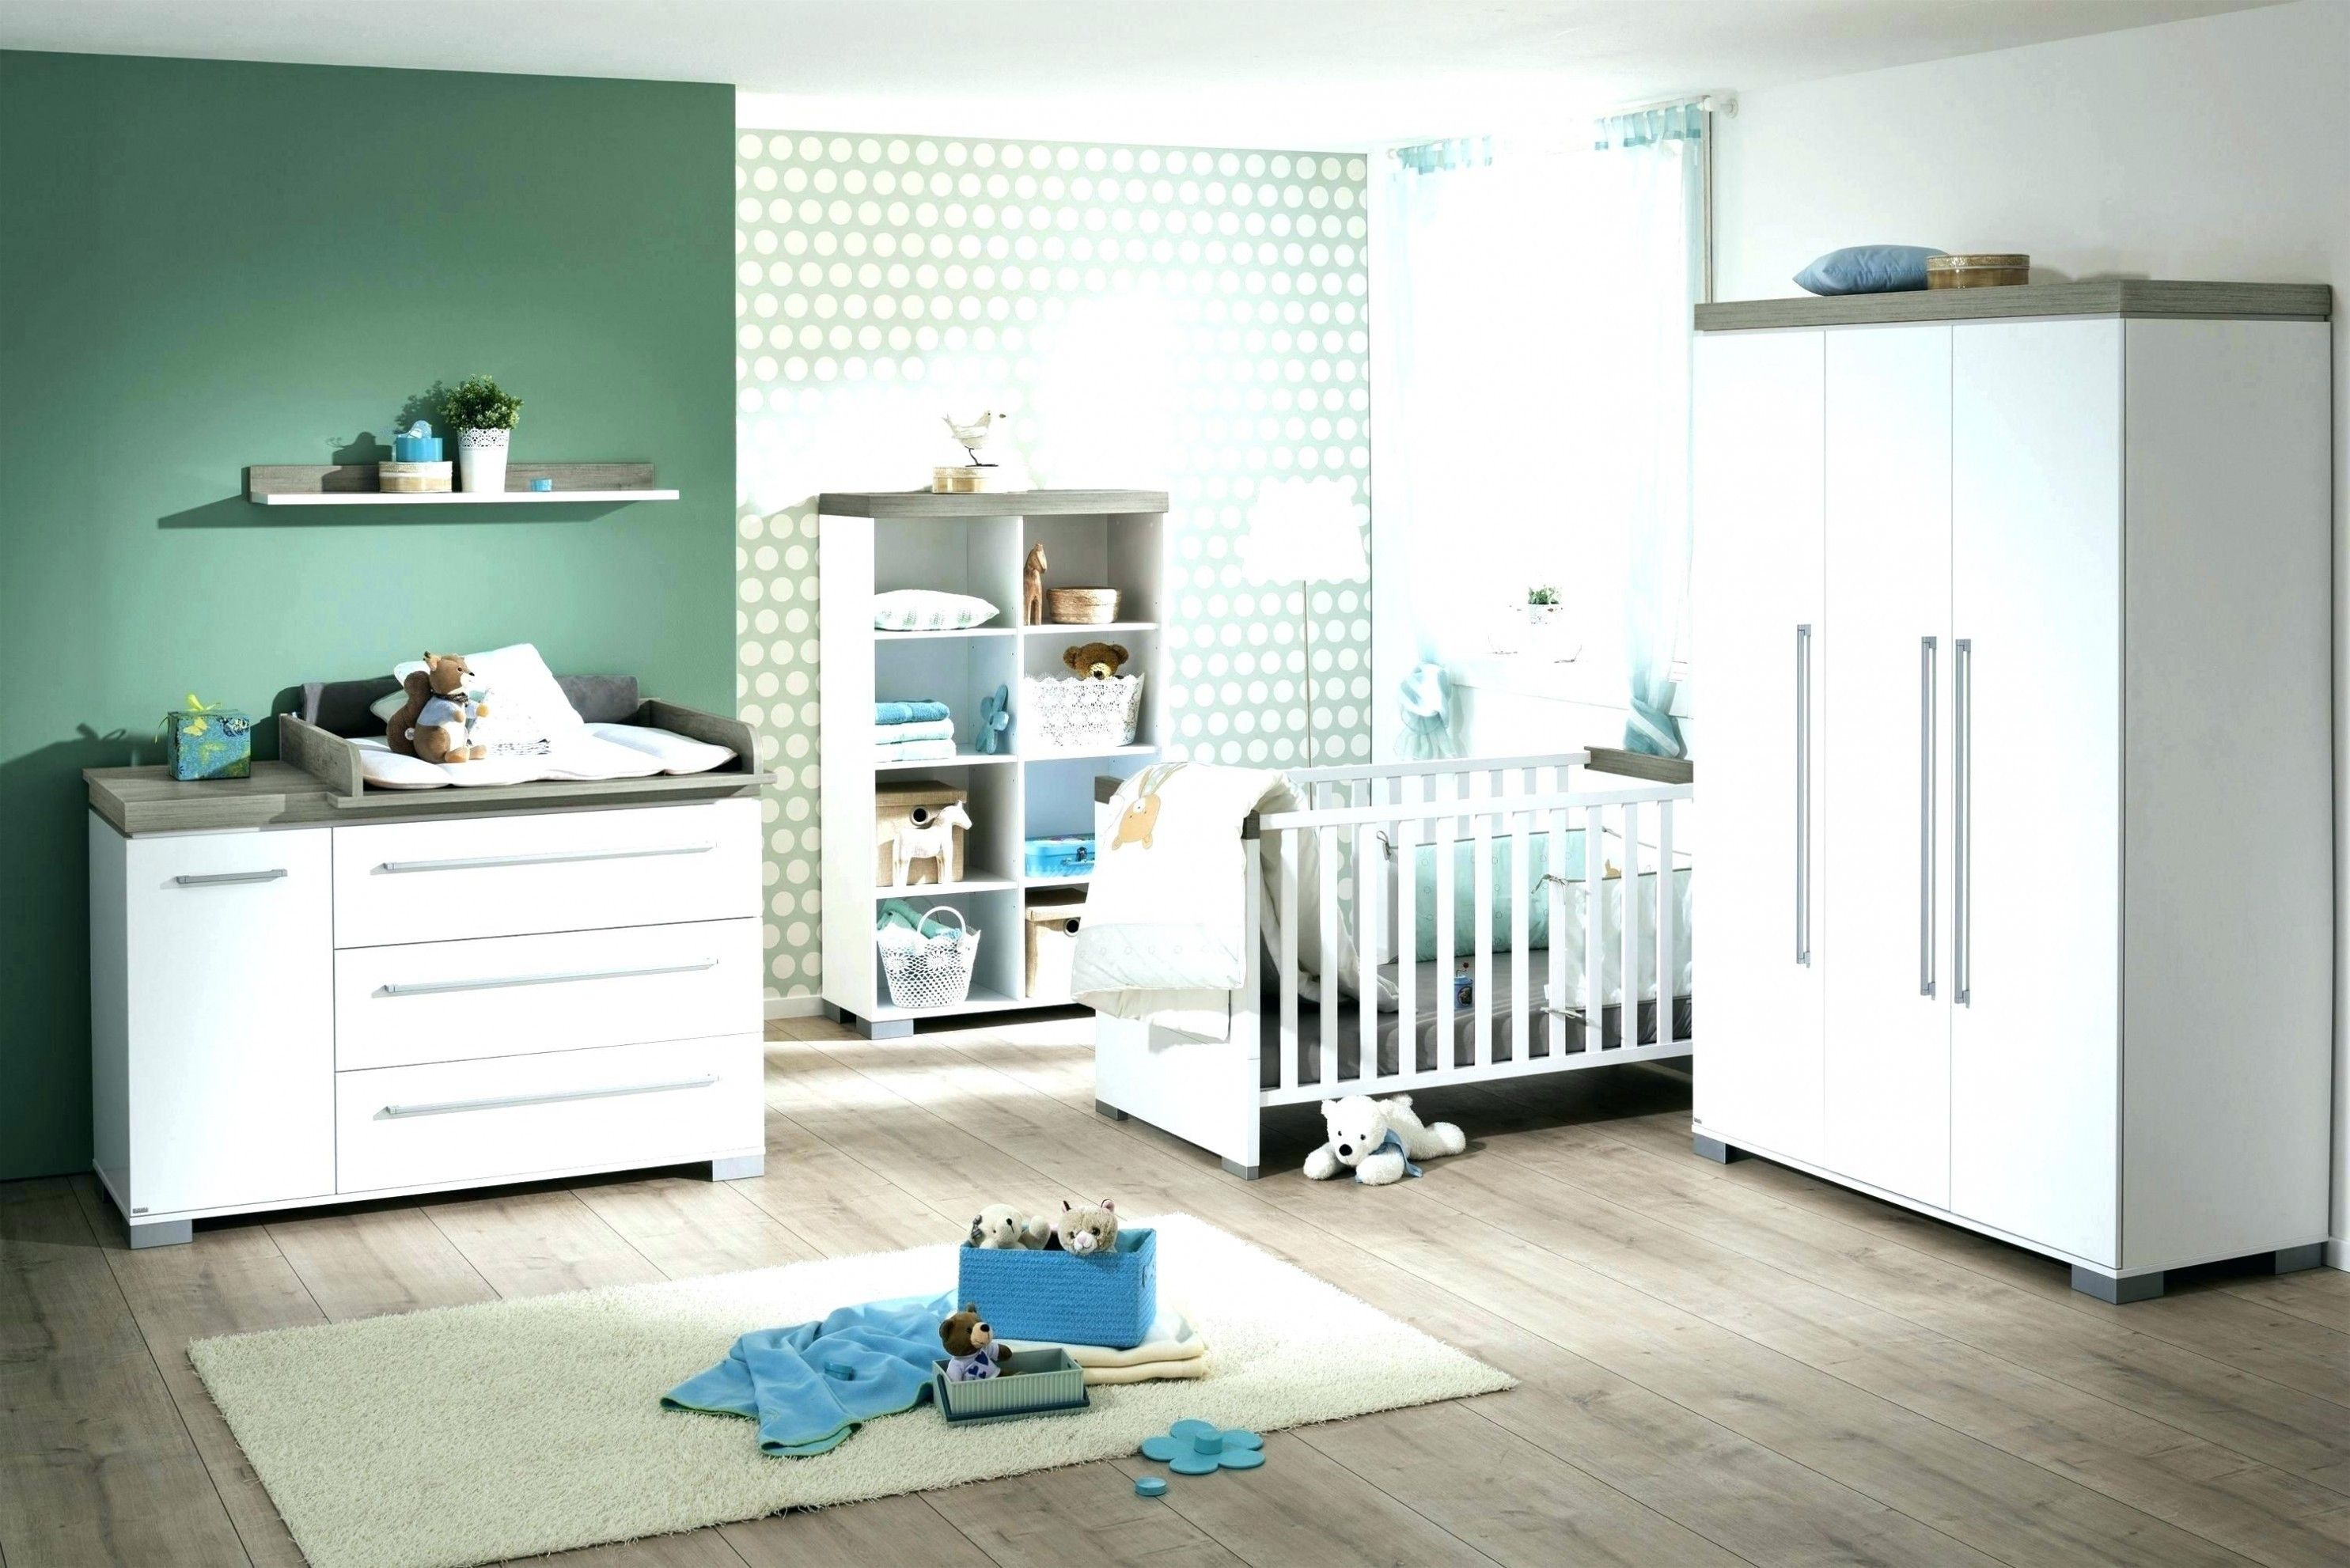 Babyzimmer Komplett Idealo Ten Facts About Babyzimmer Komplett Idealo That Will Blow Your Mi In 2021 Home Decor Bedroom Design Furniture